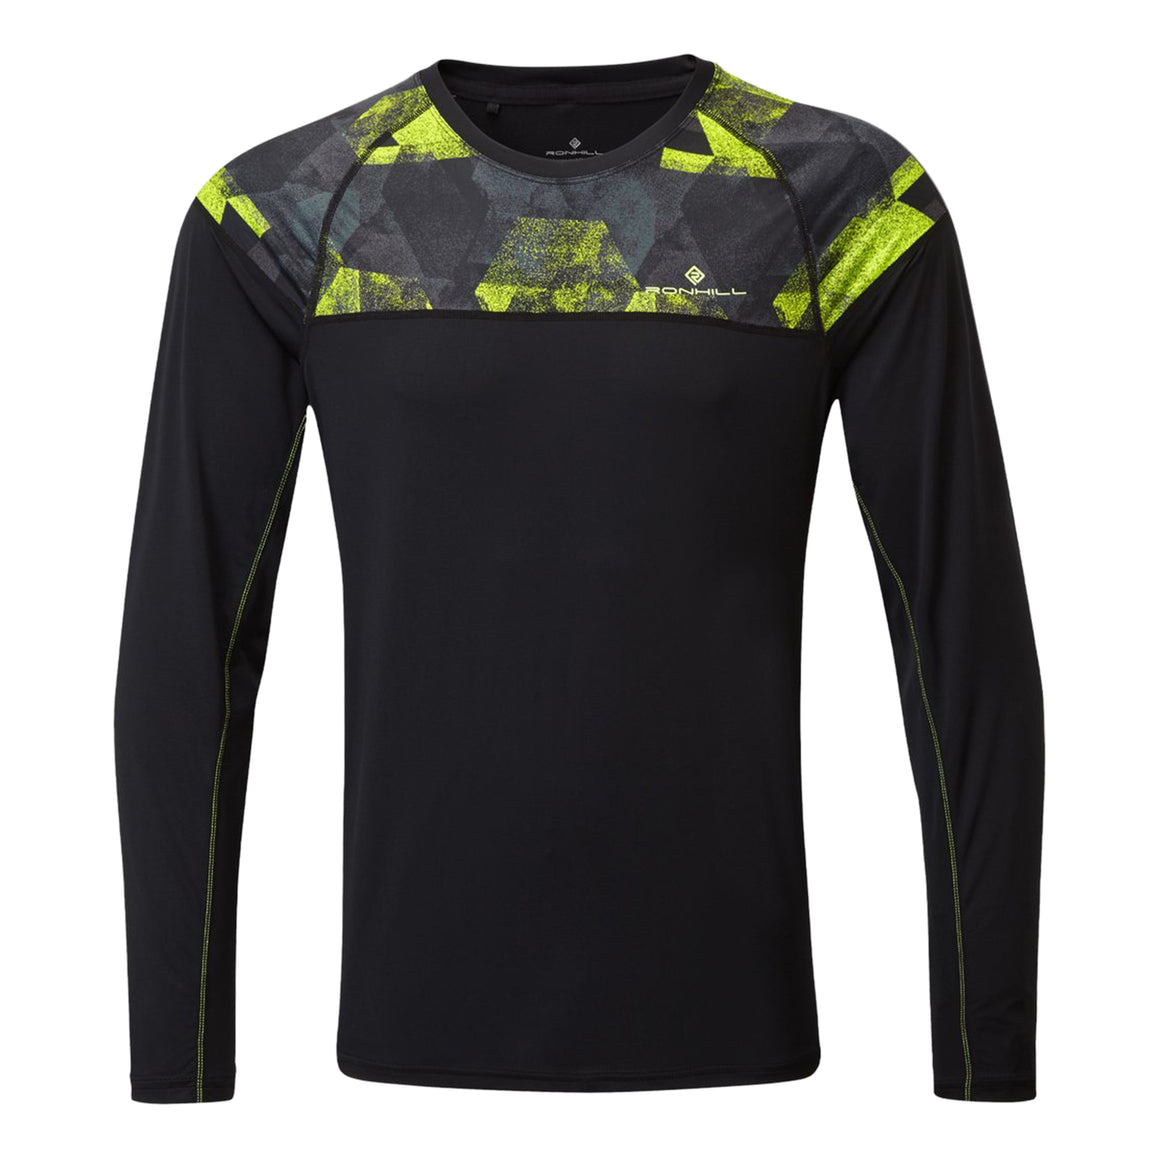 Tech Revive Long Sleeve Tee for Men in Black/Fluo Yellow